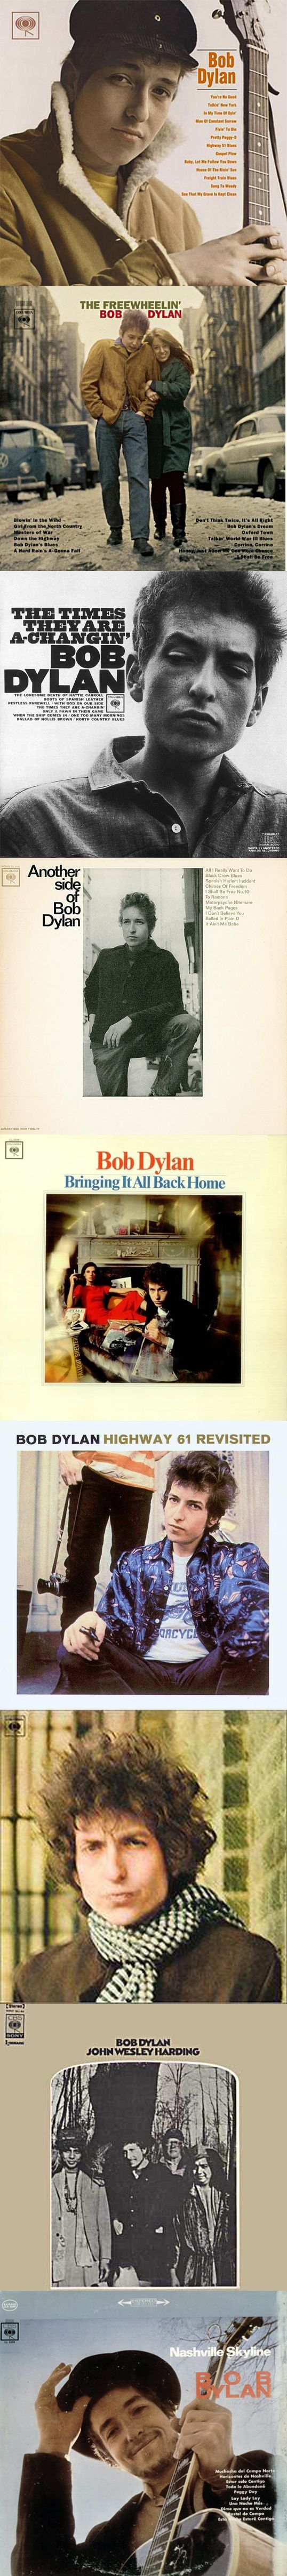 How Many '60s Bob Dylan Albums Can You Name? - The correct answer: Bob Dylan, The Freewheelin' Bob Dylan, The Times They Are a-Changin', Another Side of Bob Dylan, Bringing It All Back Home, Highway 61 Revisited, Blonde on Blonde, John Wesley Harding, Nashville Skyline.